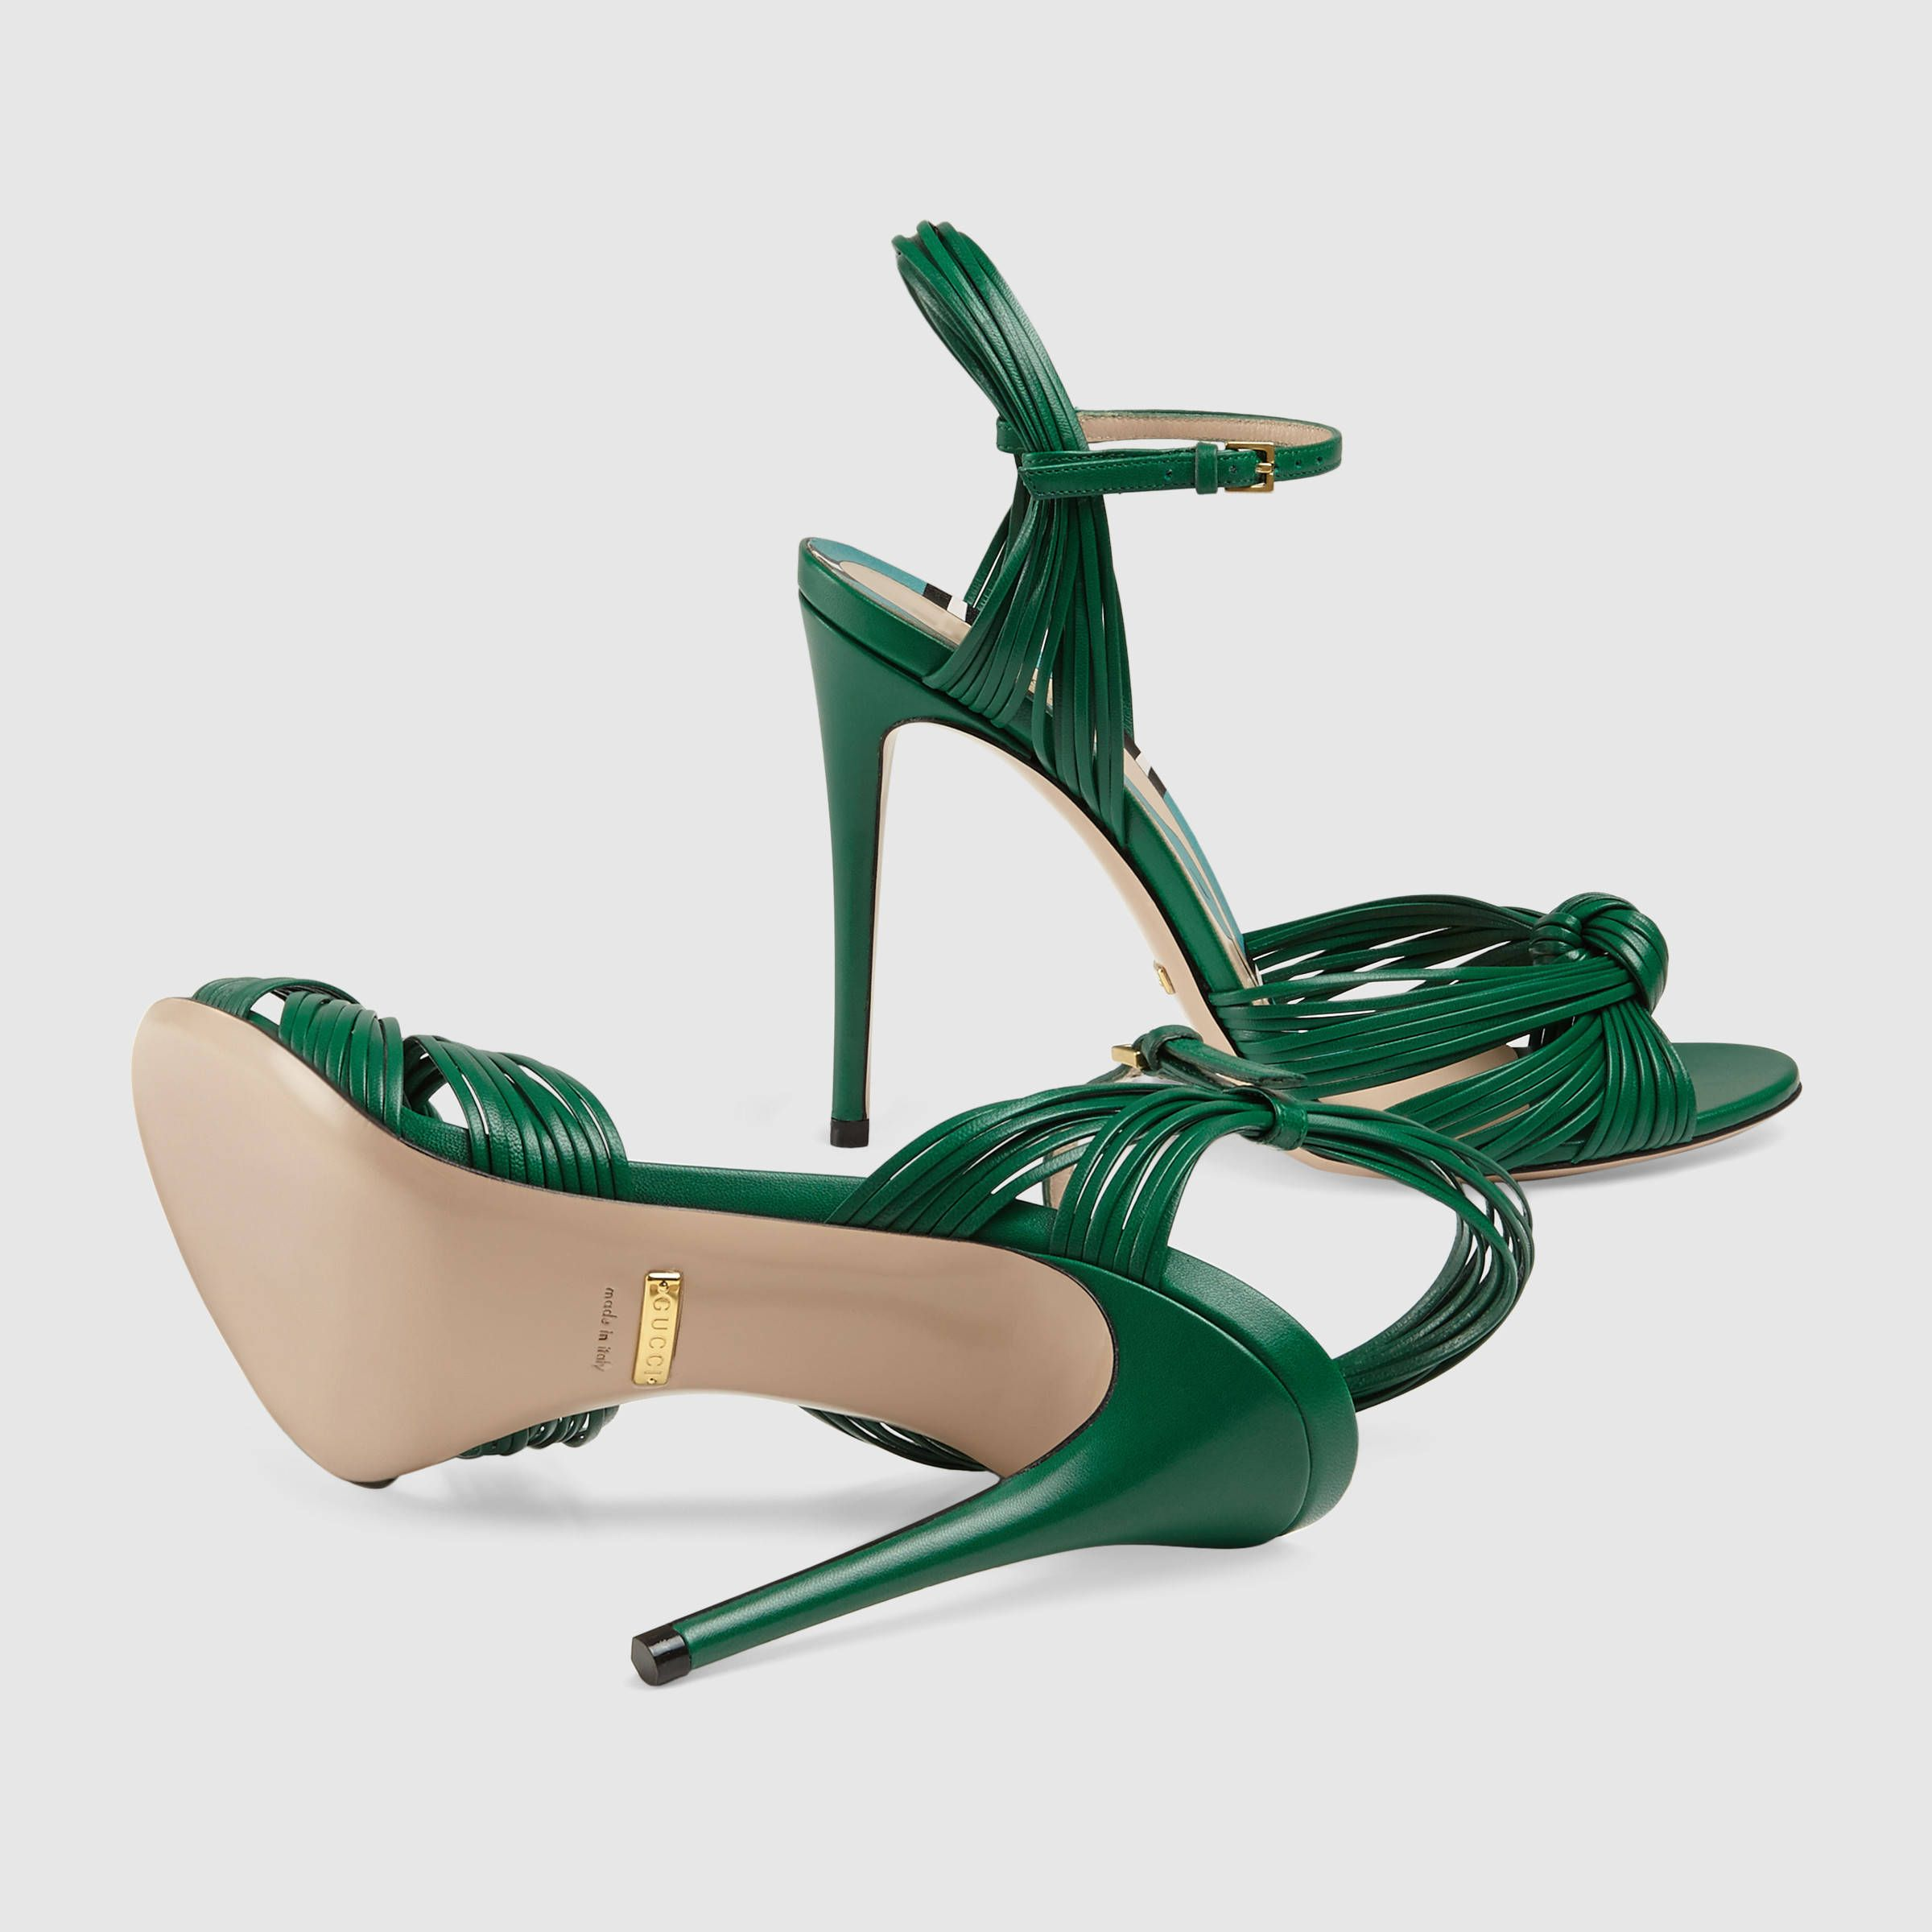 Ankle strap sandals, Gucci leather